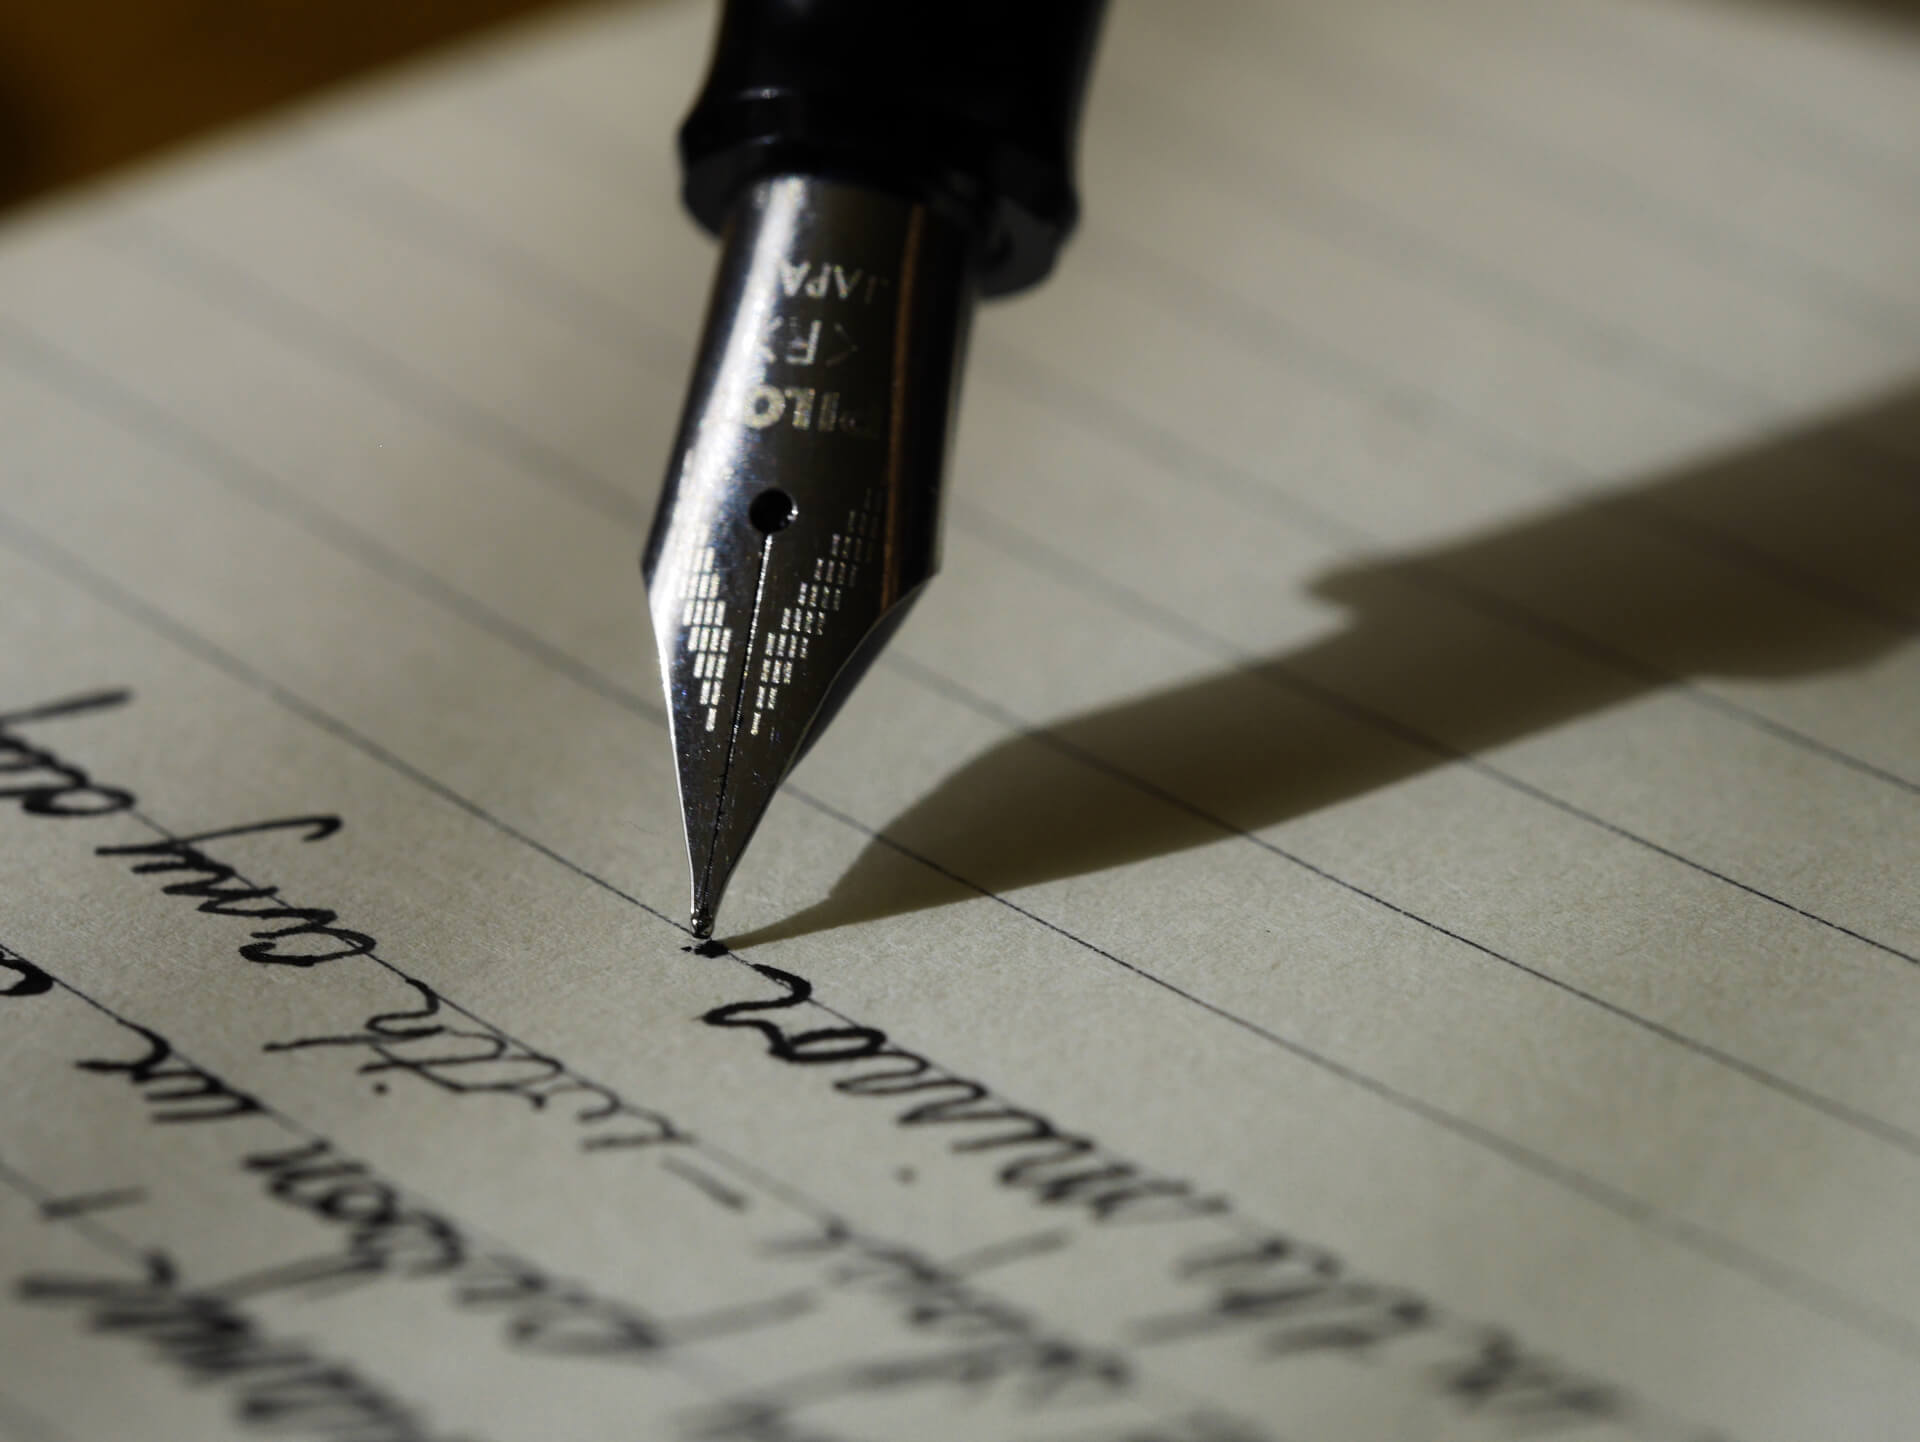 Fountain pen writing cursive in black ink on lined paper